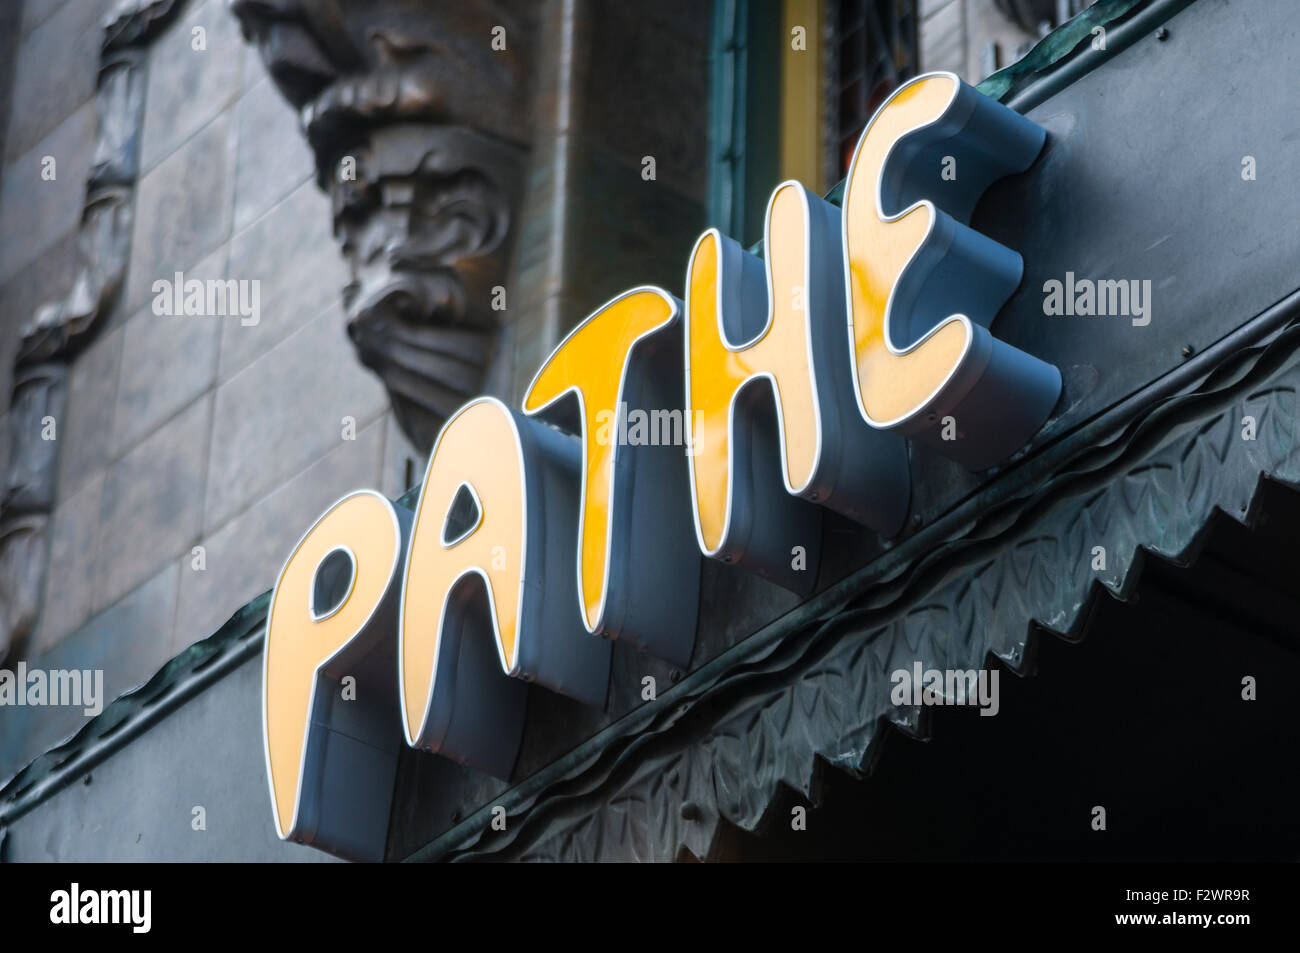 Sign at the Pathe theater cinema, Amsterdam - Stock Image